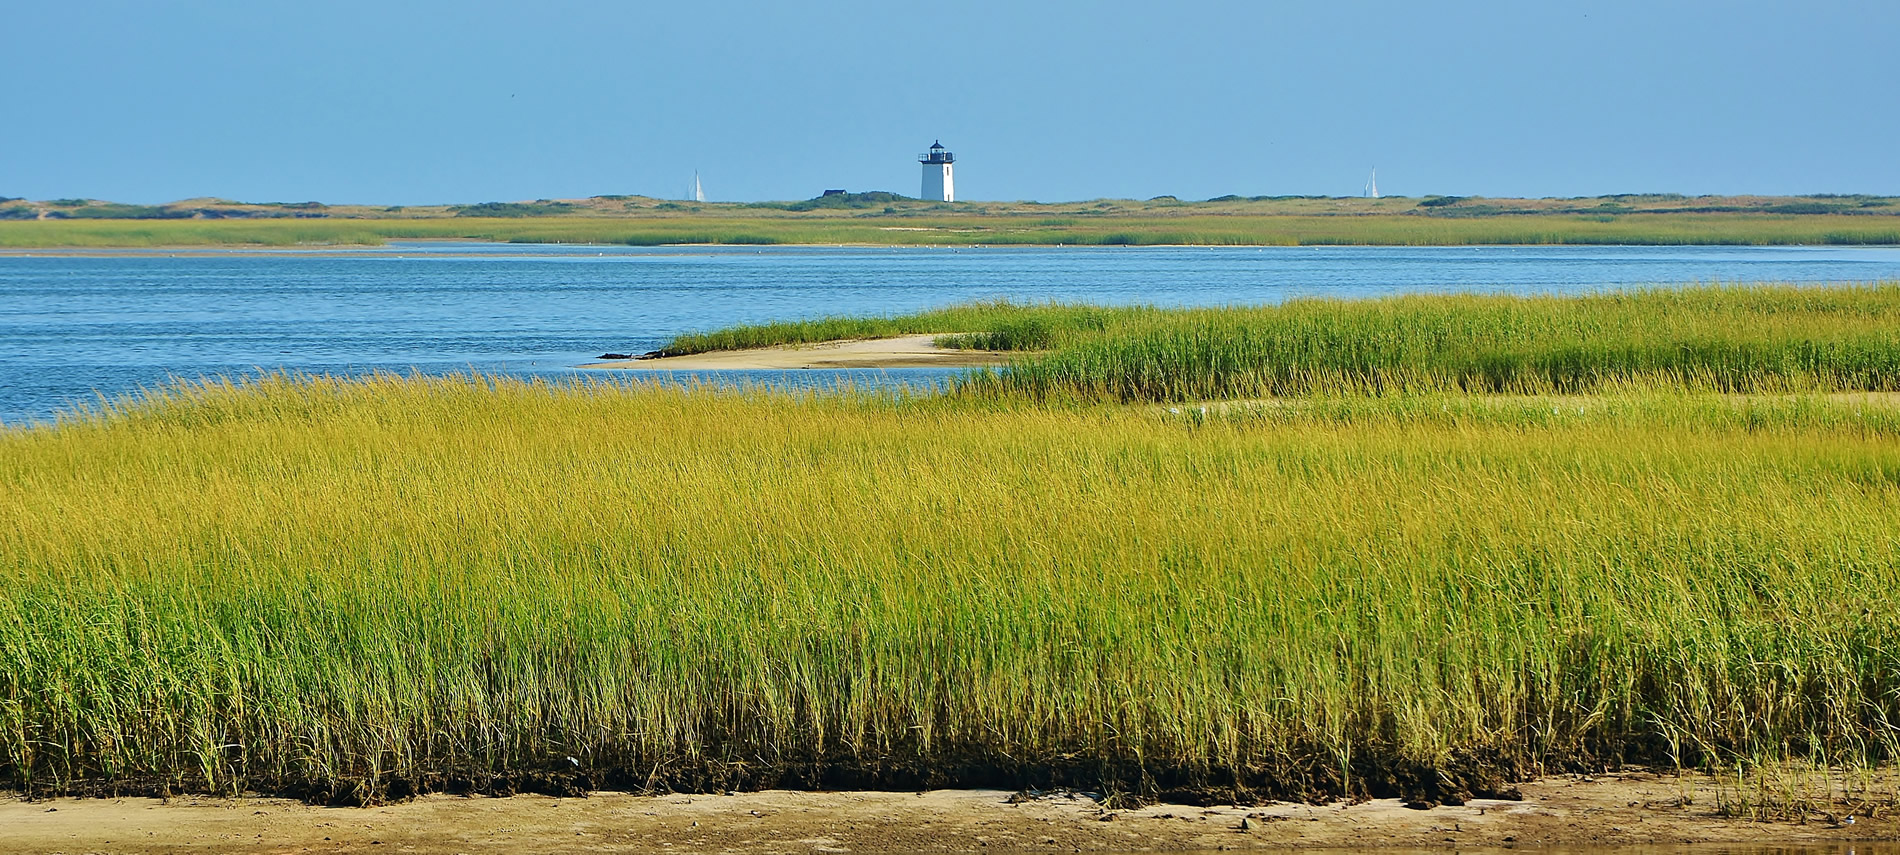 Green and Yellow marsh with blue water then a lighthouse in the background